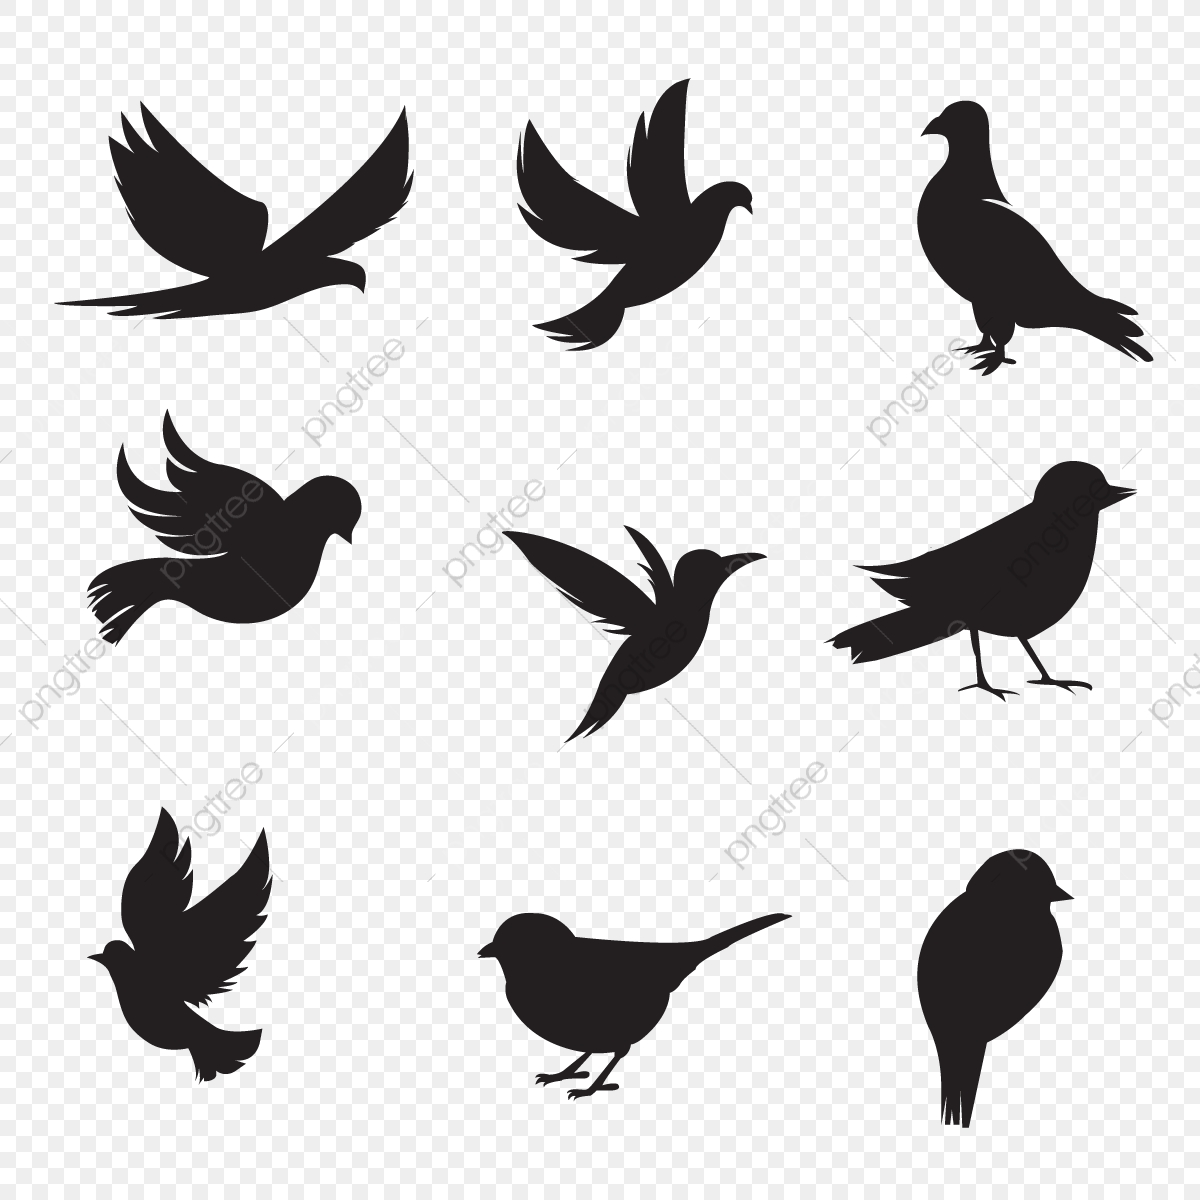 Bird Silhouette Collection, Silhouette, Bunny, Animal PNG